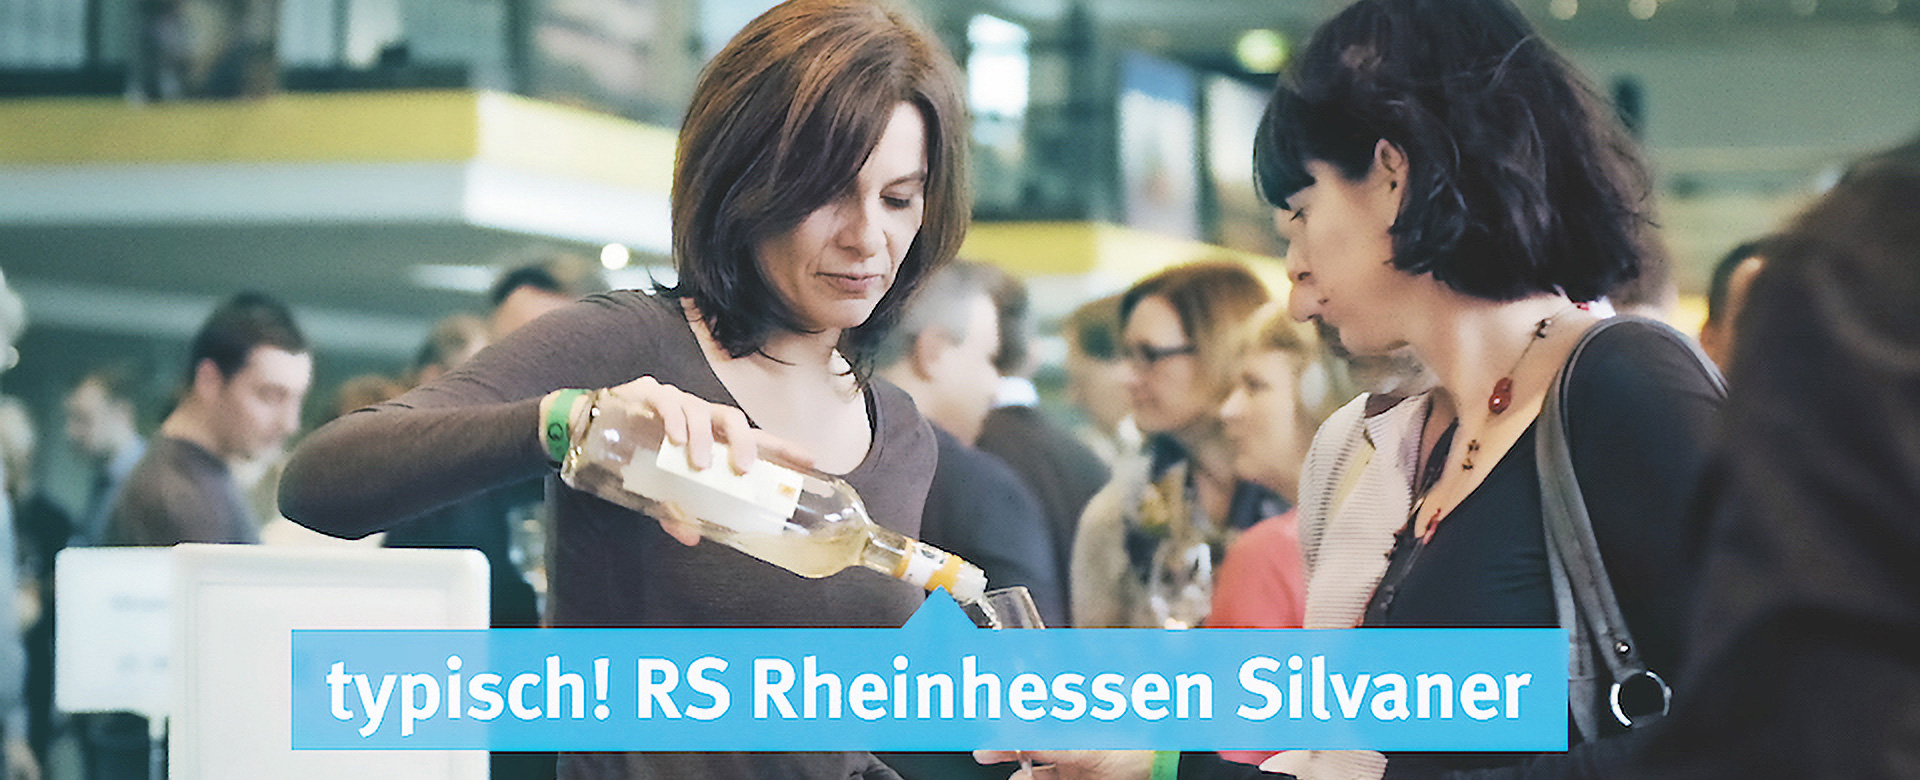 Rheinhessenwein e. V. Weinforum in Mainz